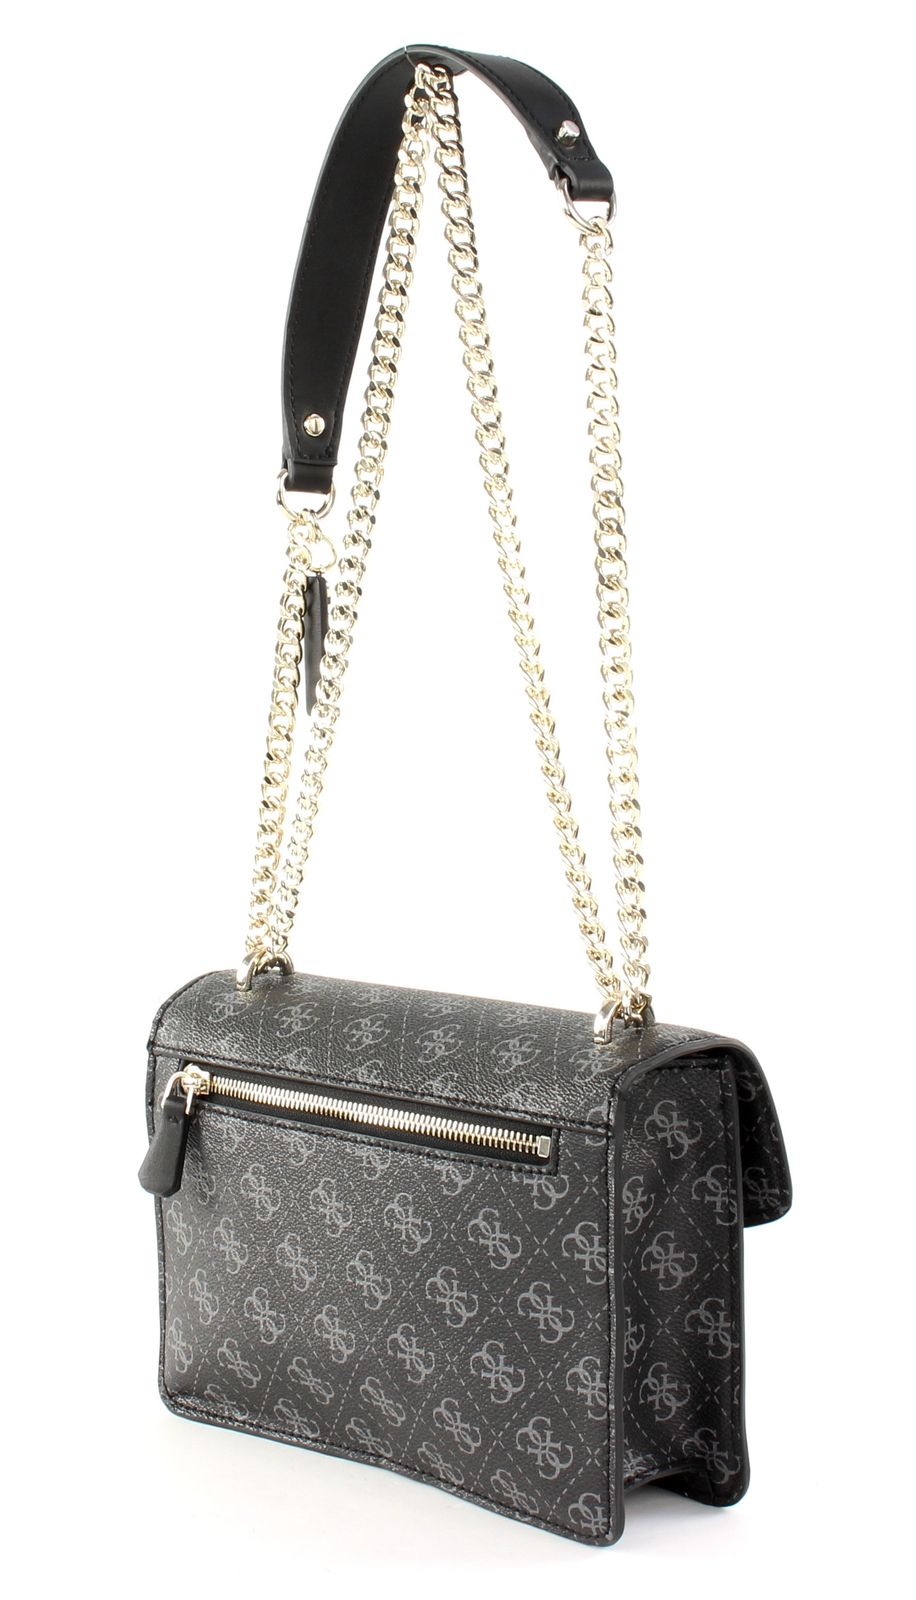 GUESS Aline Convertible Xbody Flap Coal | eBay